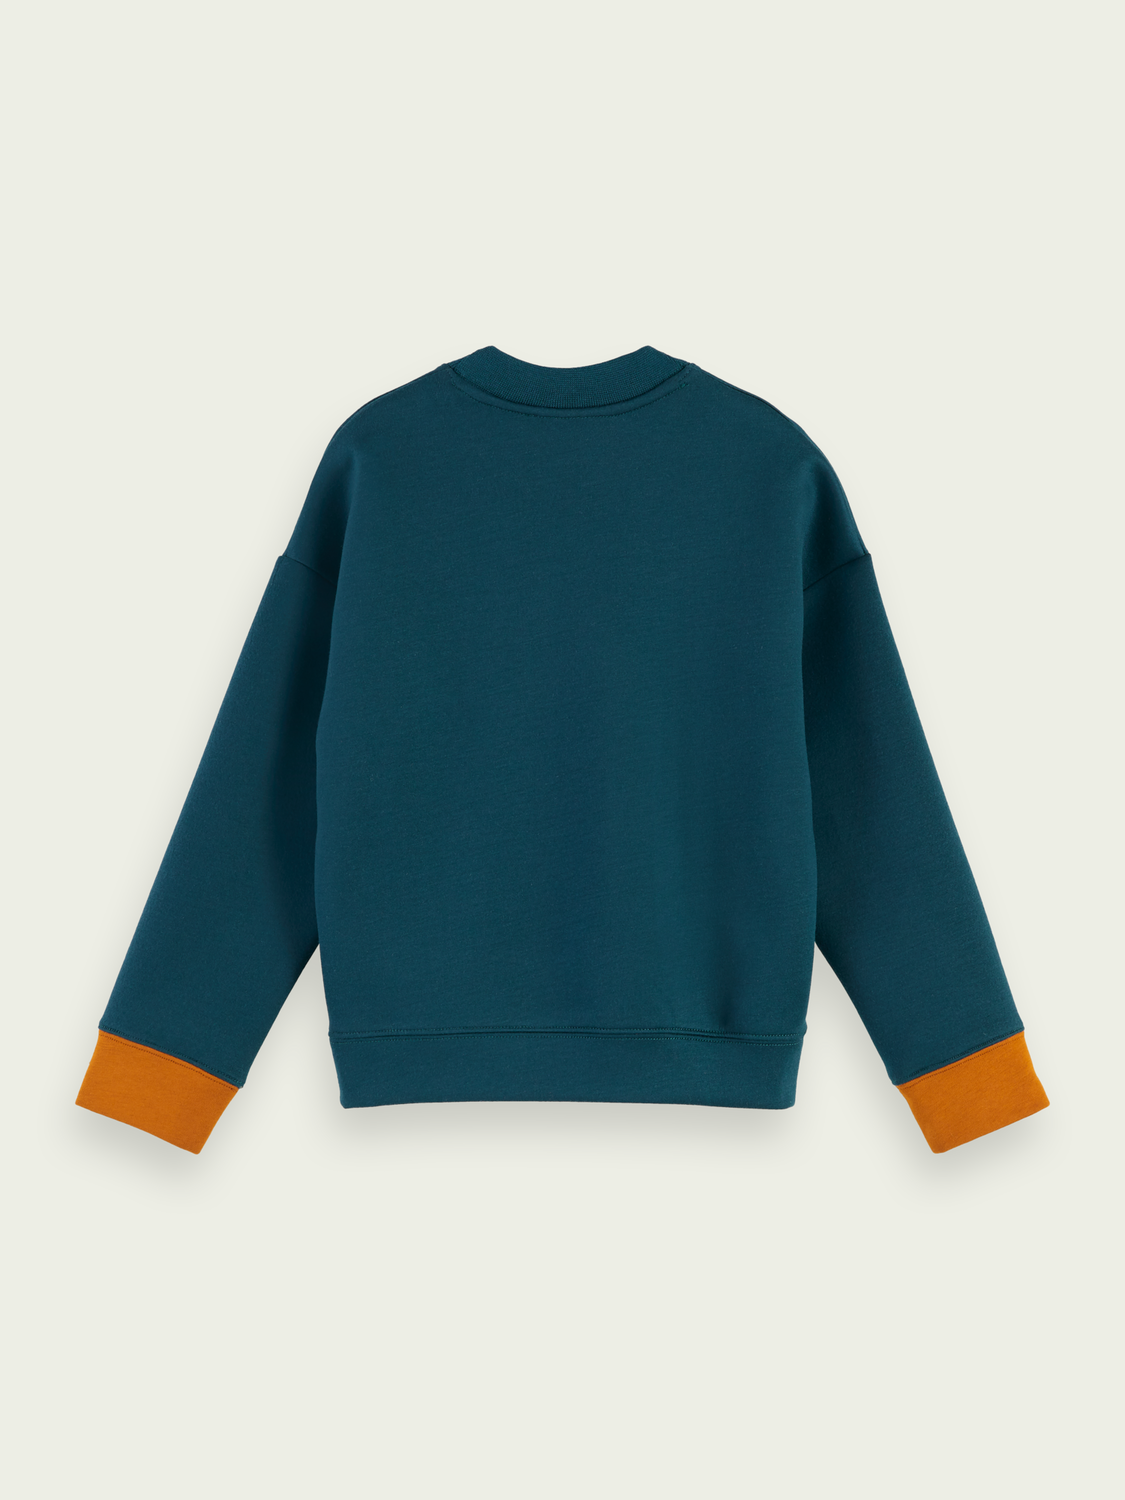 Kinder Zweifarbiges Sweatshirt